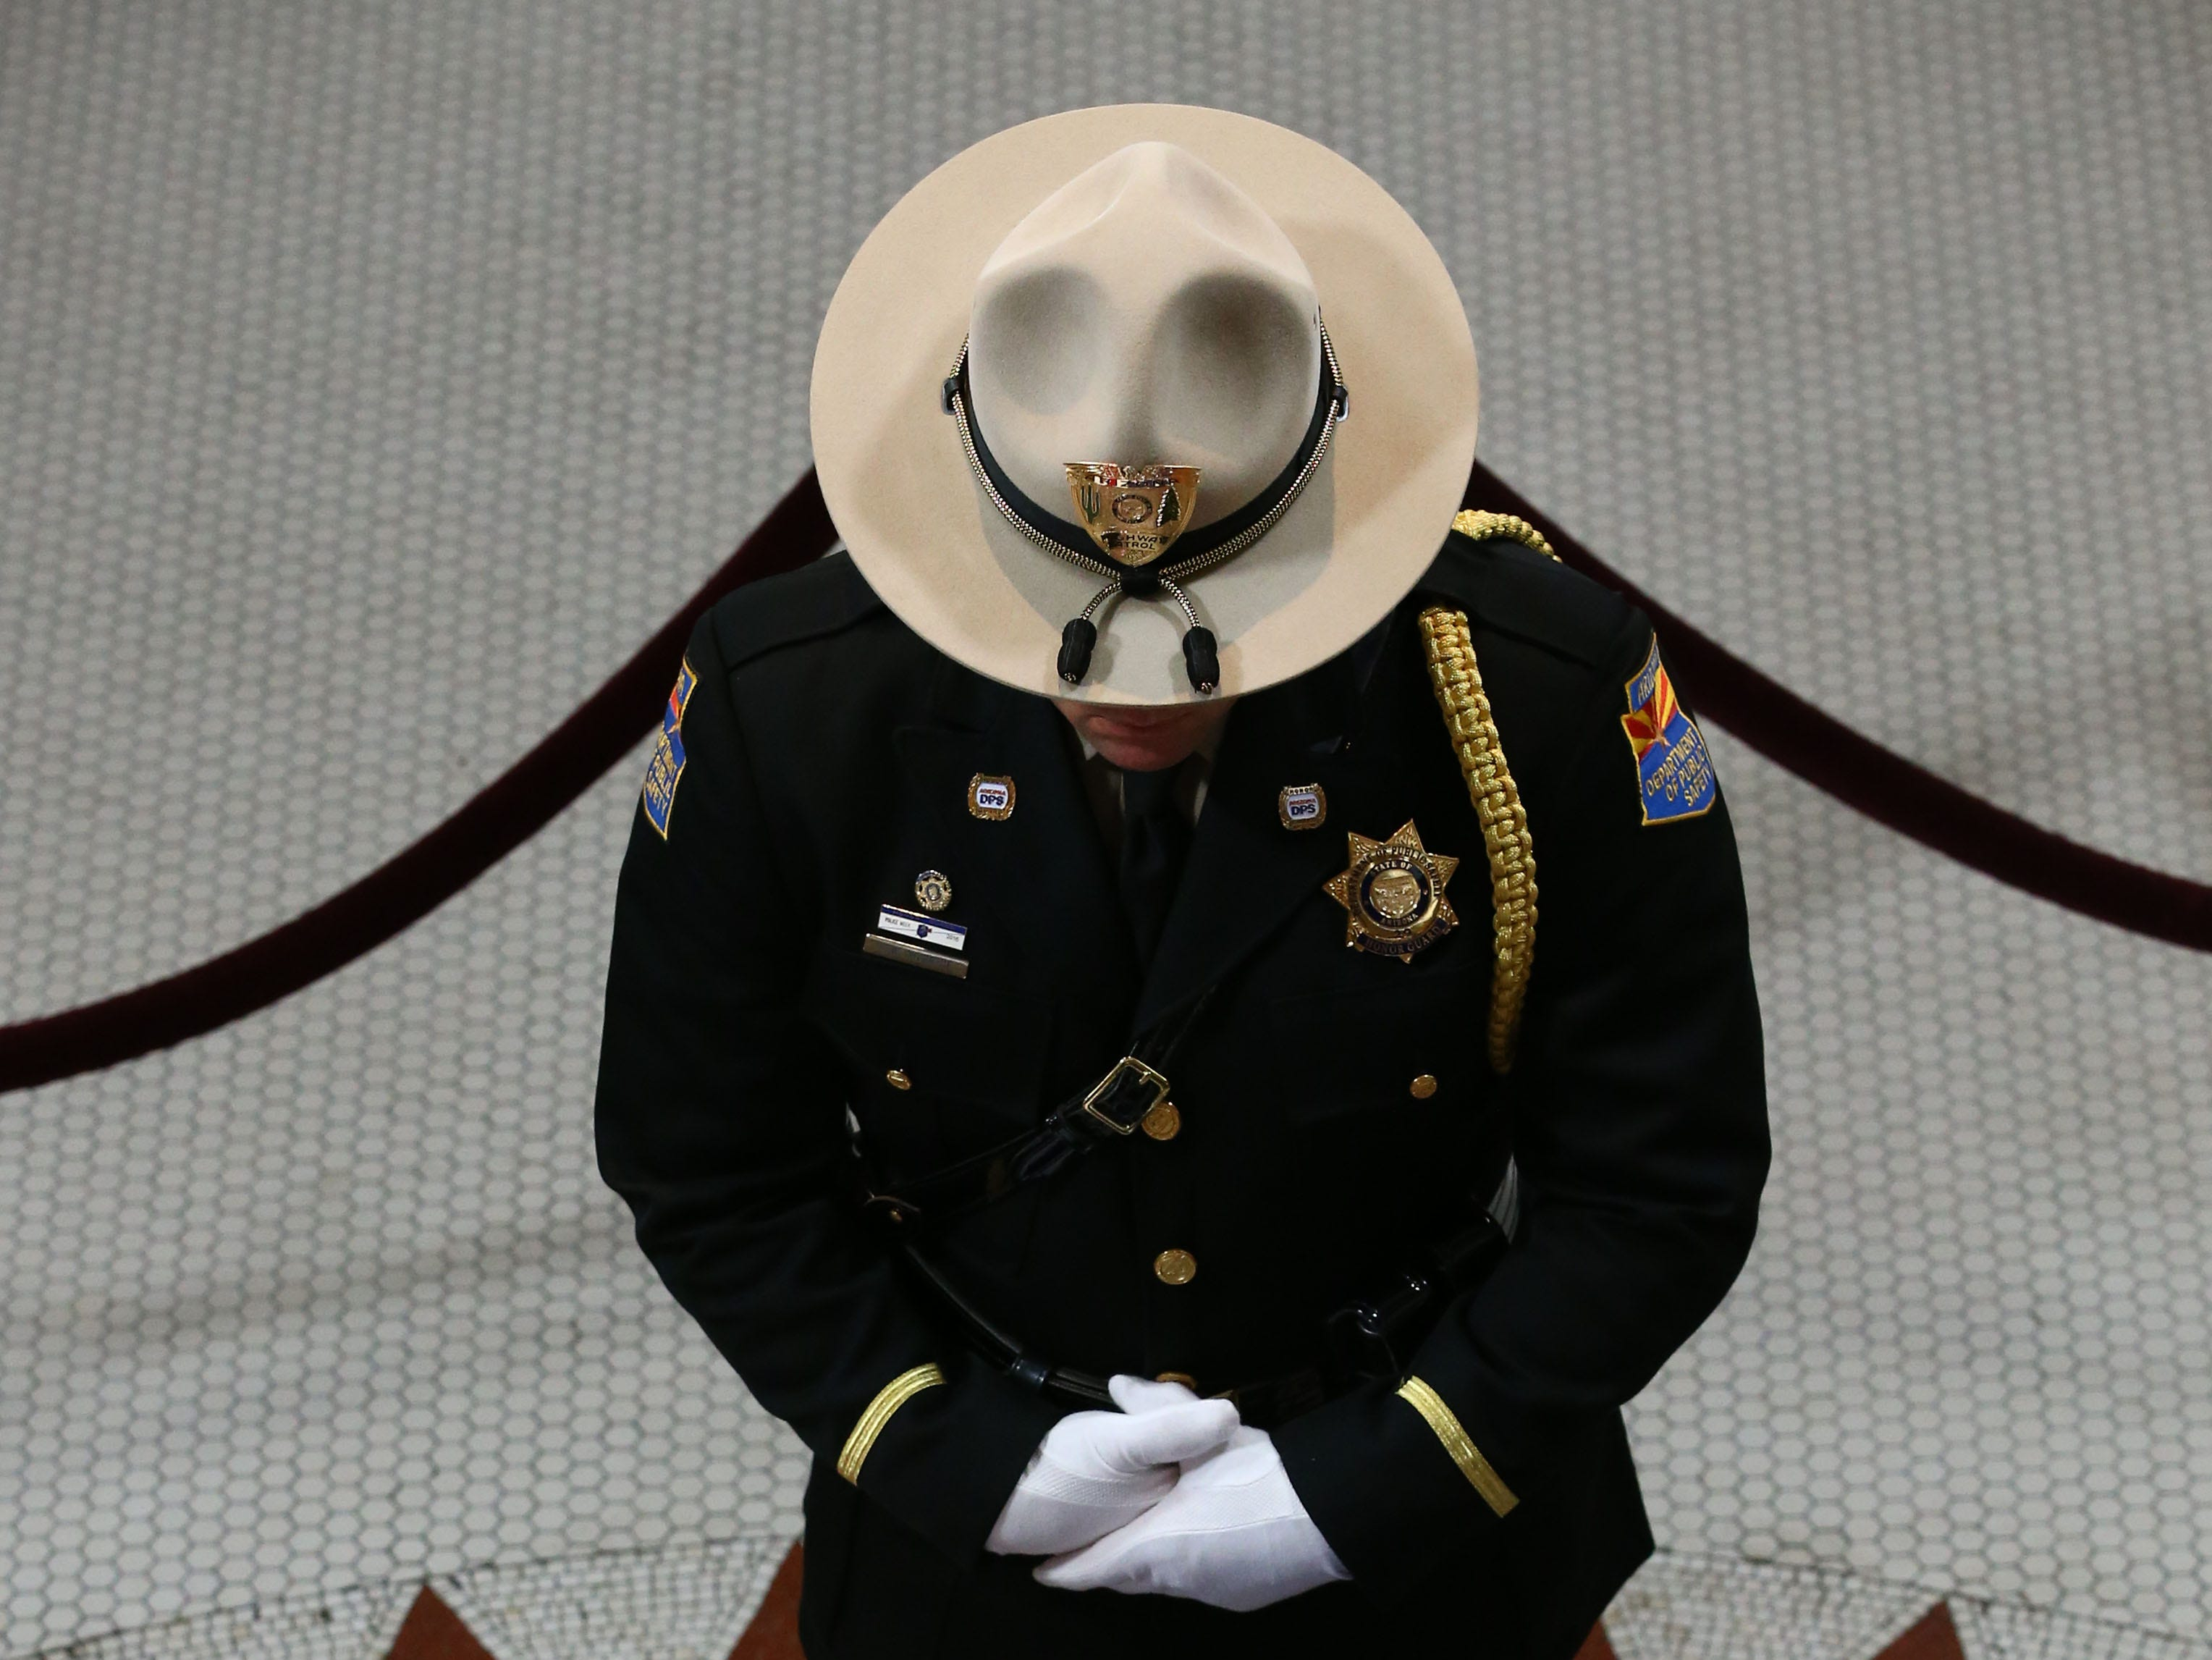 Senator John McCain lies in state in the Rotunda with an Arizona National Guard of Honor in attendance following his memorial service at the Arizona State Capitol on Aug. 29, 2018, in Phoenix, Ariz.